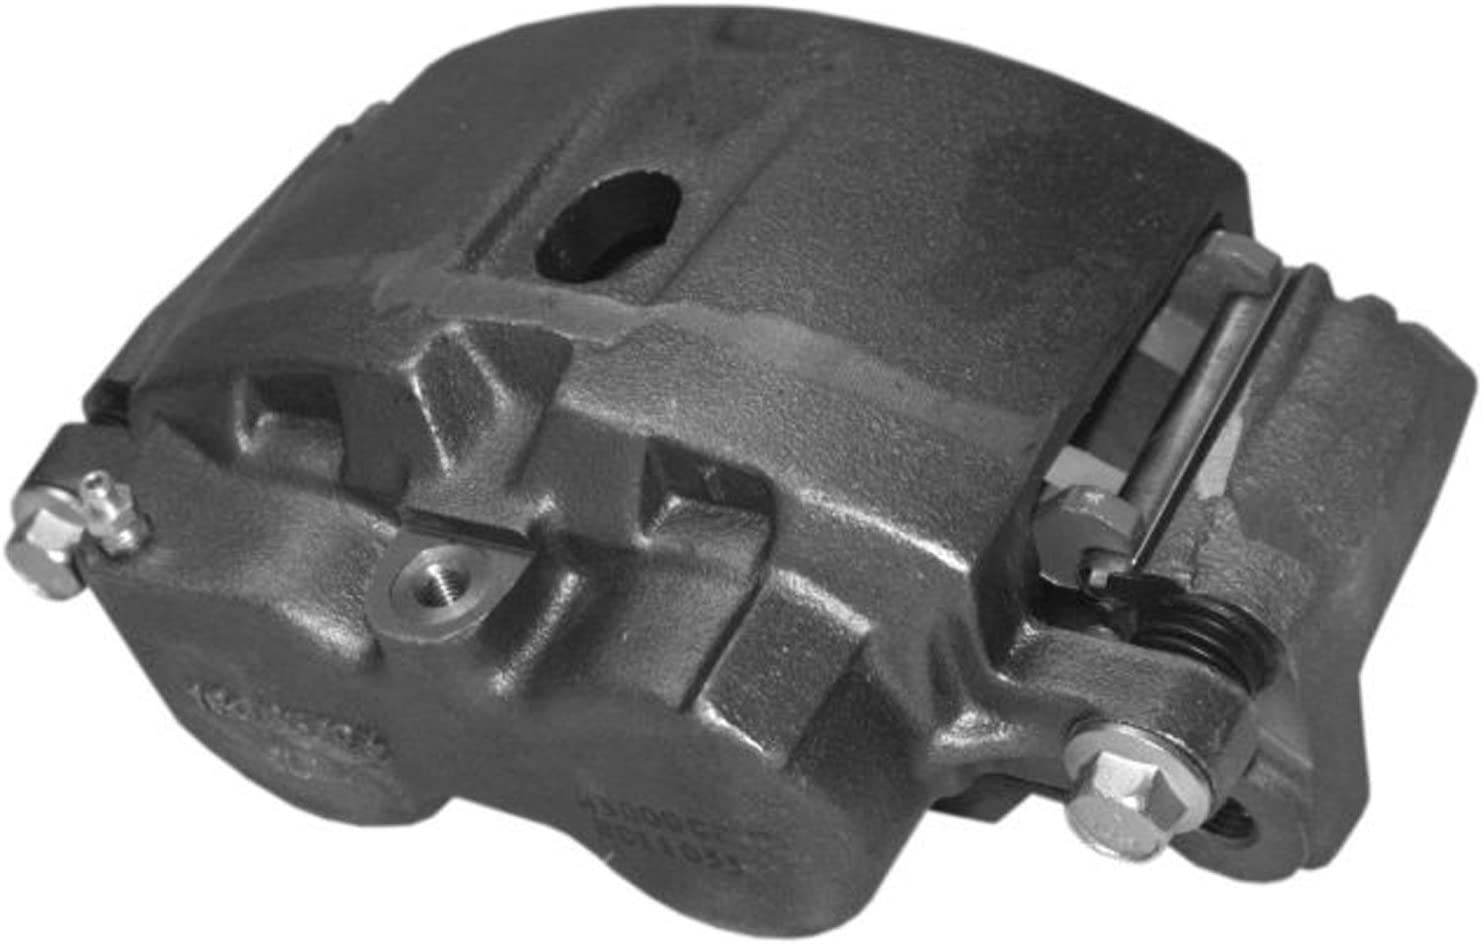 ACDelco 18FR1370 Professional Front Passenger Side Disc Brake Caliper Assembly without Pads Friction Ready Non-Coated Remanufactured